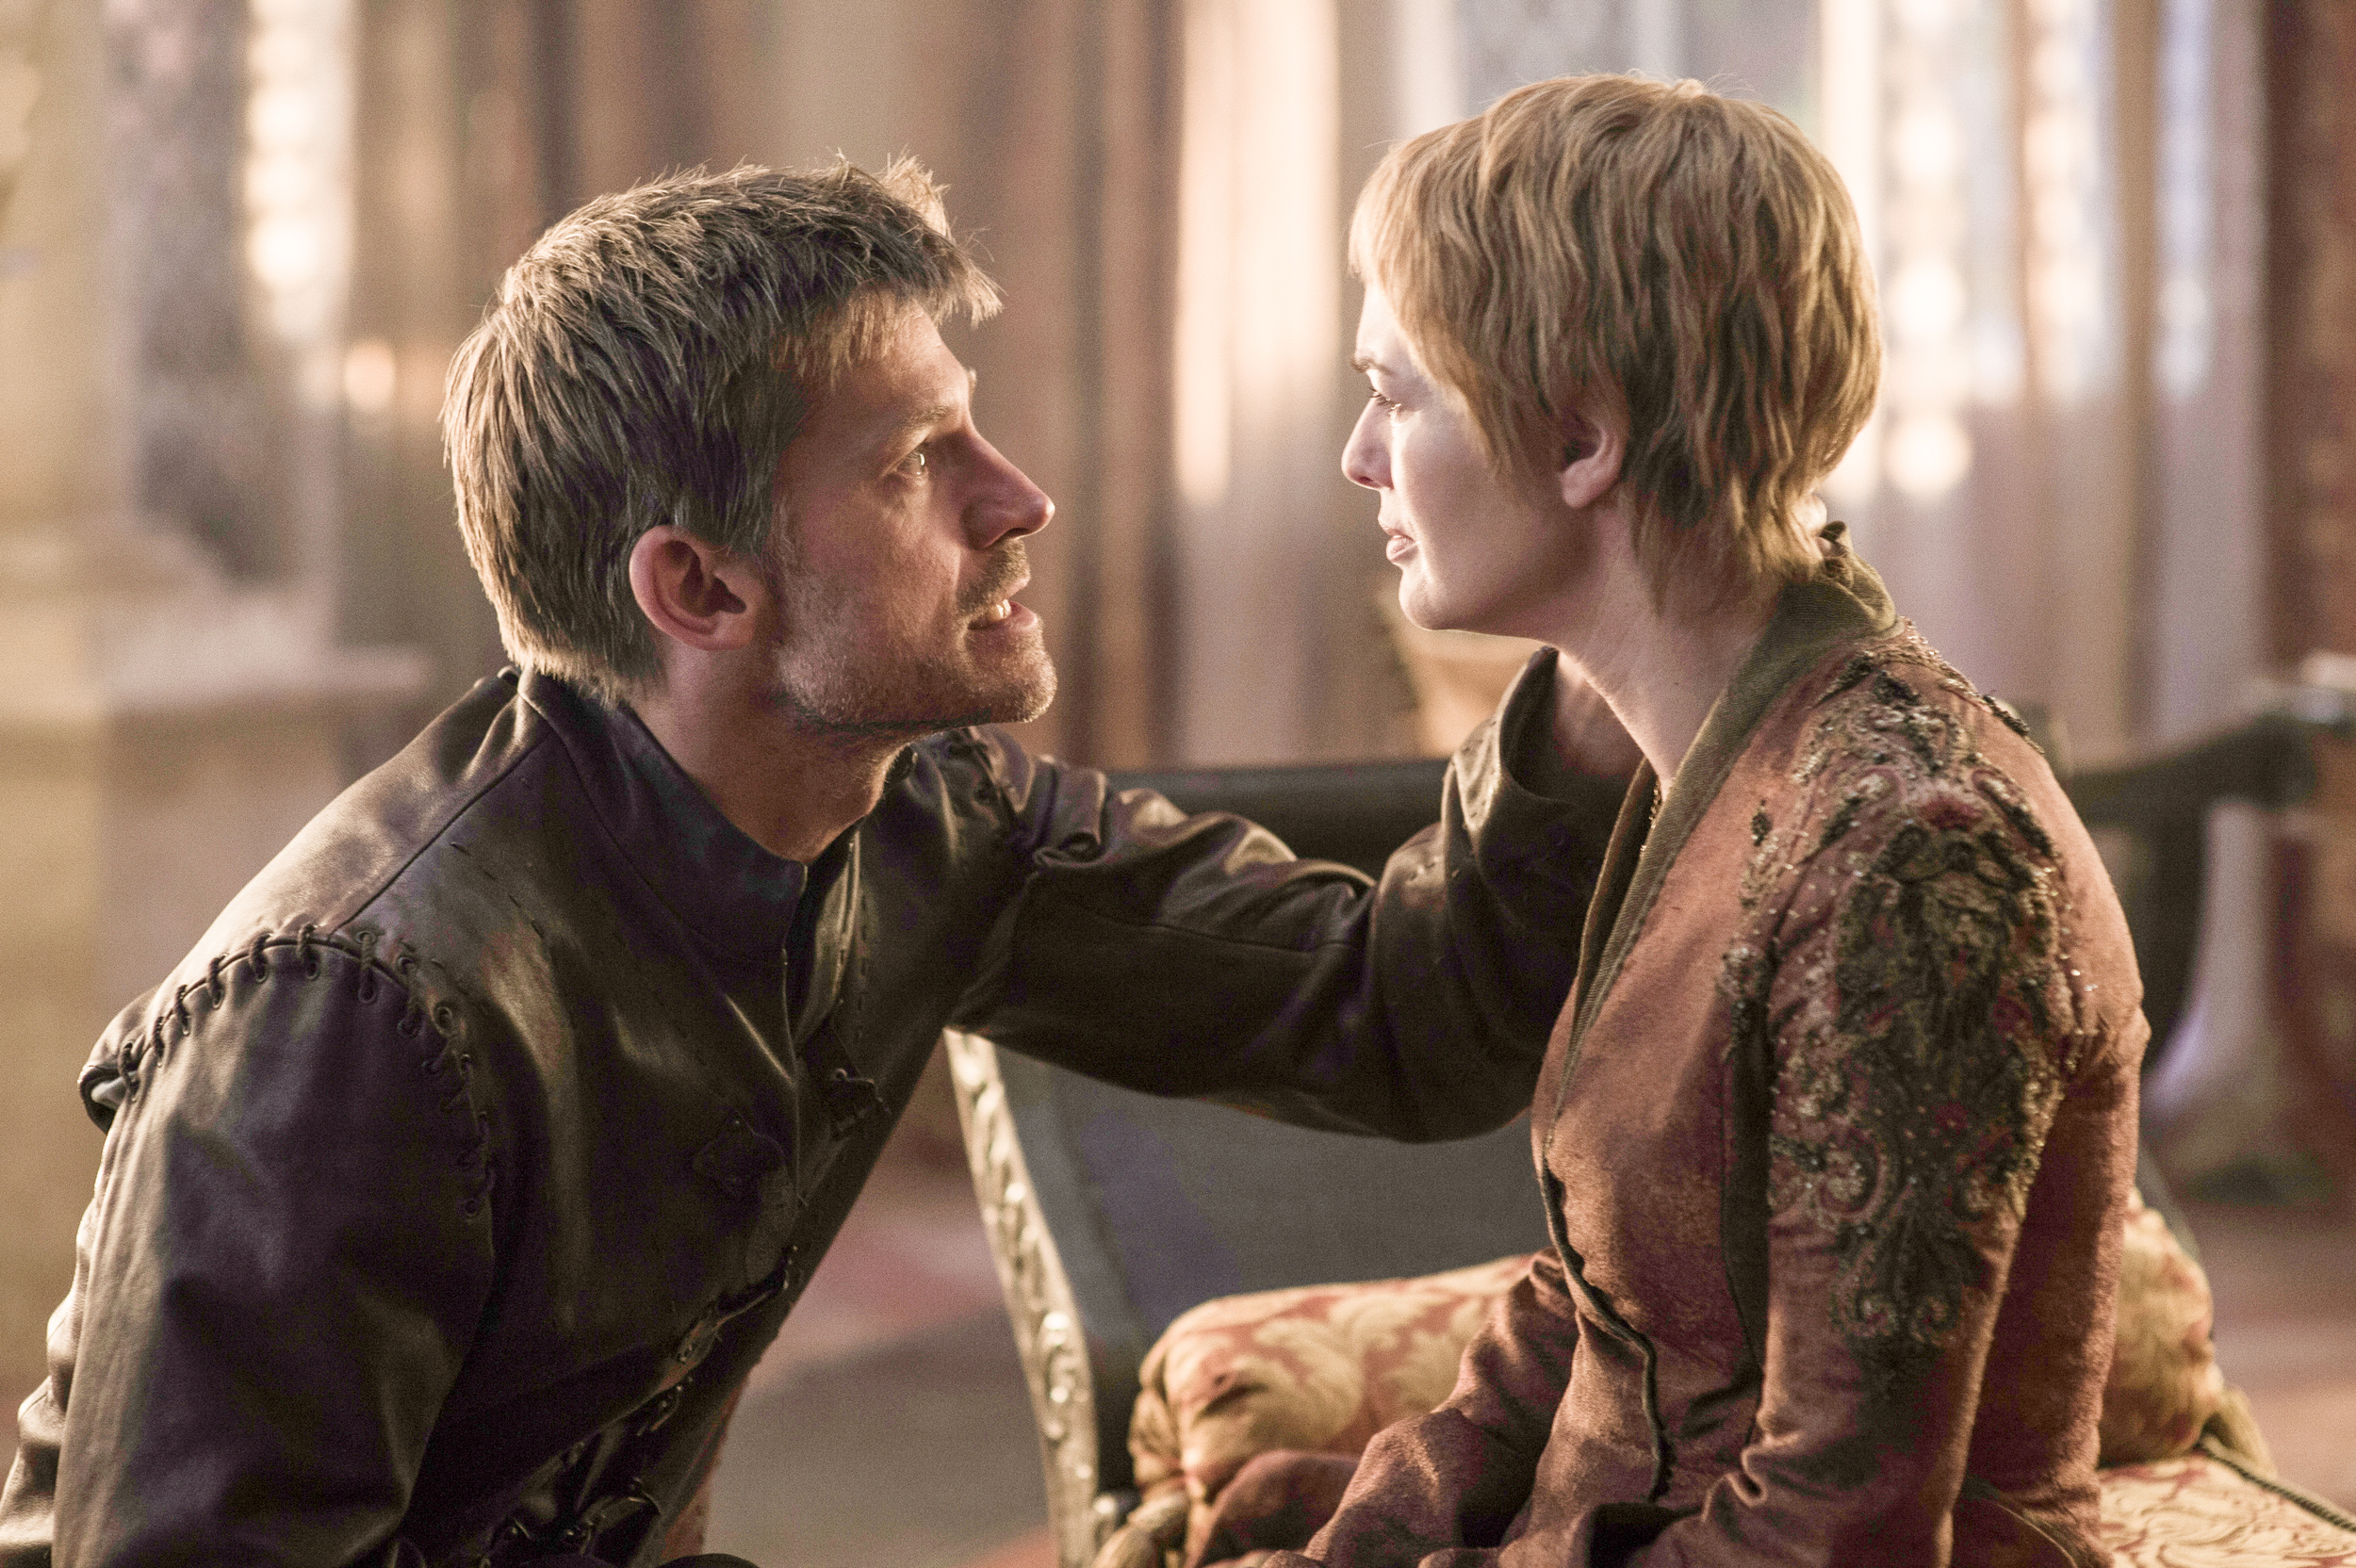 game of thrones season 6 photos, jaime lannister, cersei lannister